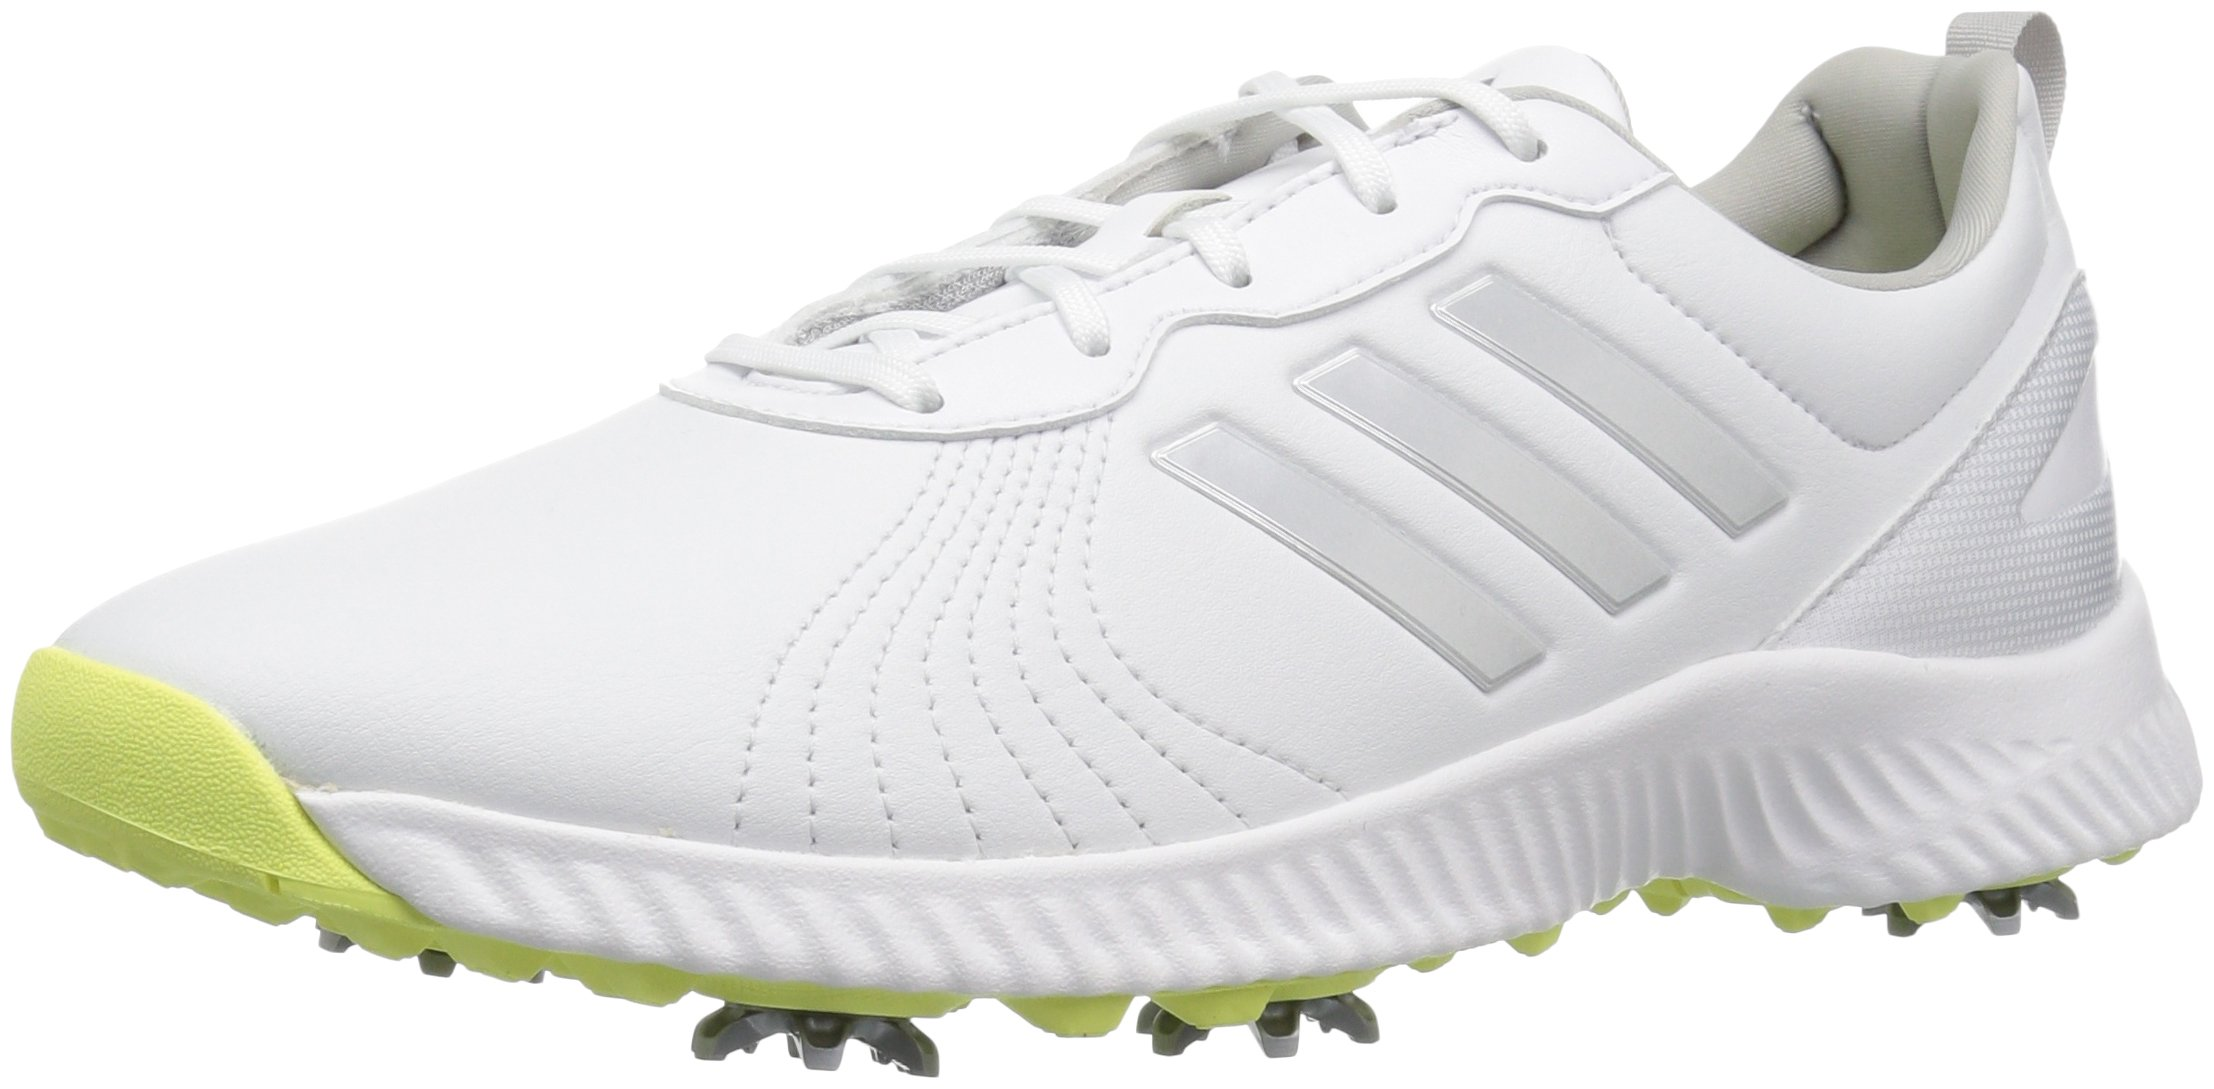 adidas Women's W Response Bounce Golf Shoe FTWR White/Silver met./semi Frozen Yellow Fabric 7 Medium US